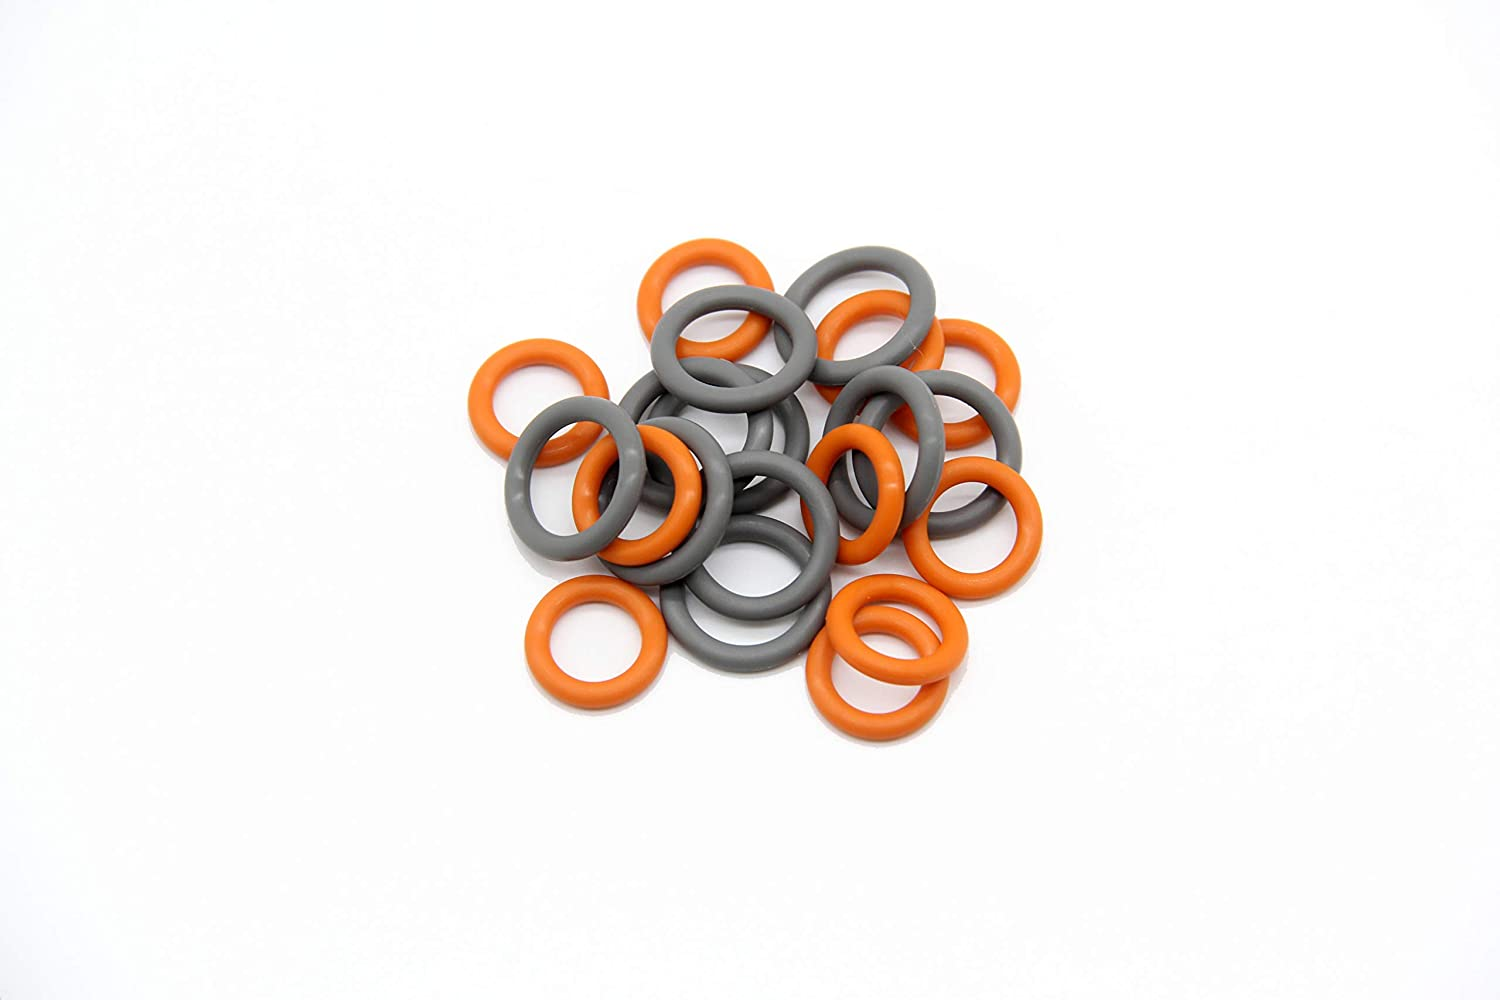 1//4 /& 3//8 Pressure Washer Quick Coulper QD Colored O-Rings 20 Pack